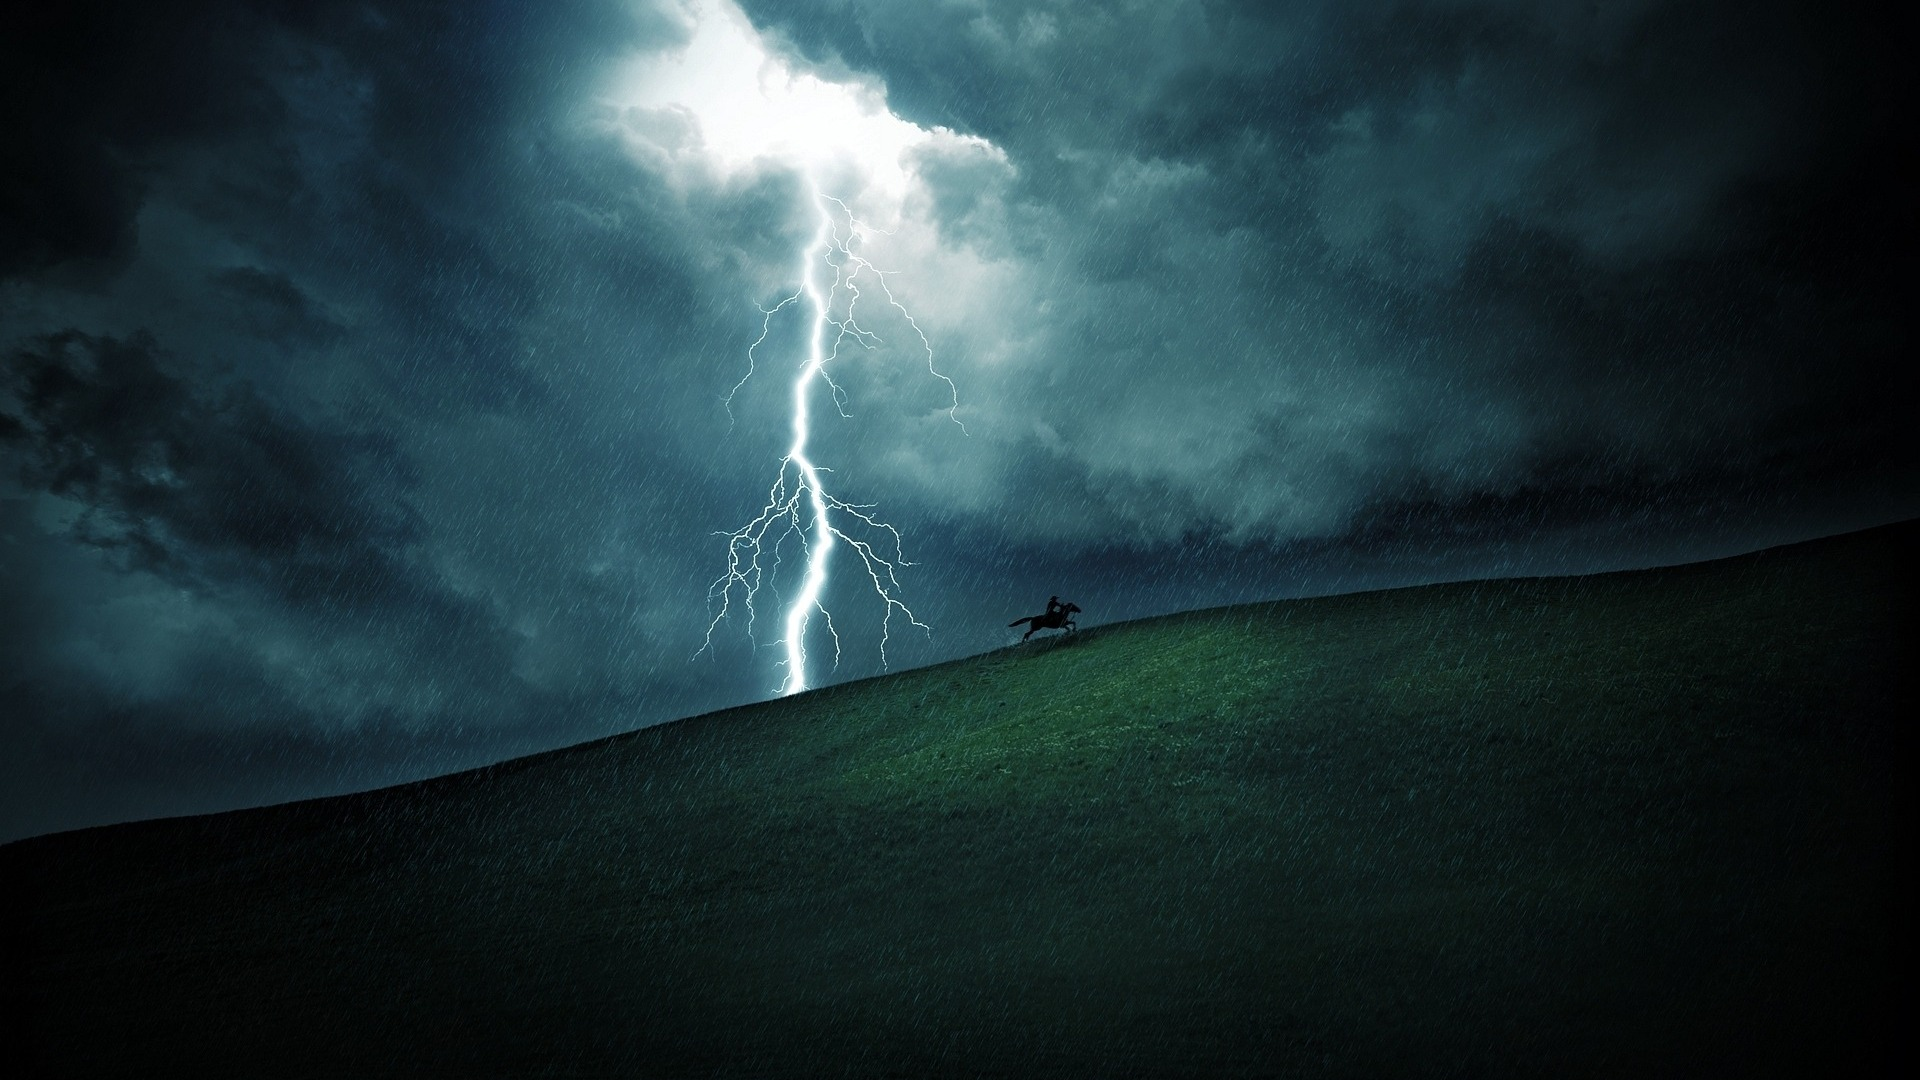 Hd Thunderstorm Wallpapers: Thunderstorm Thunderstorms Imageek Wallpapers 1920x1080px